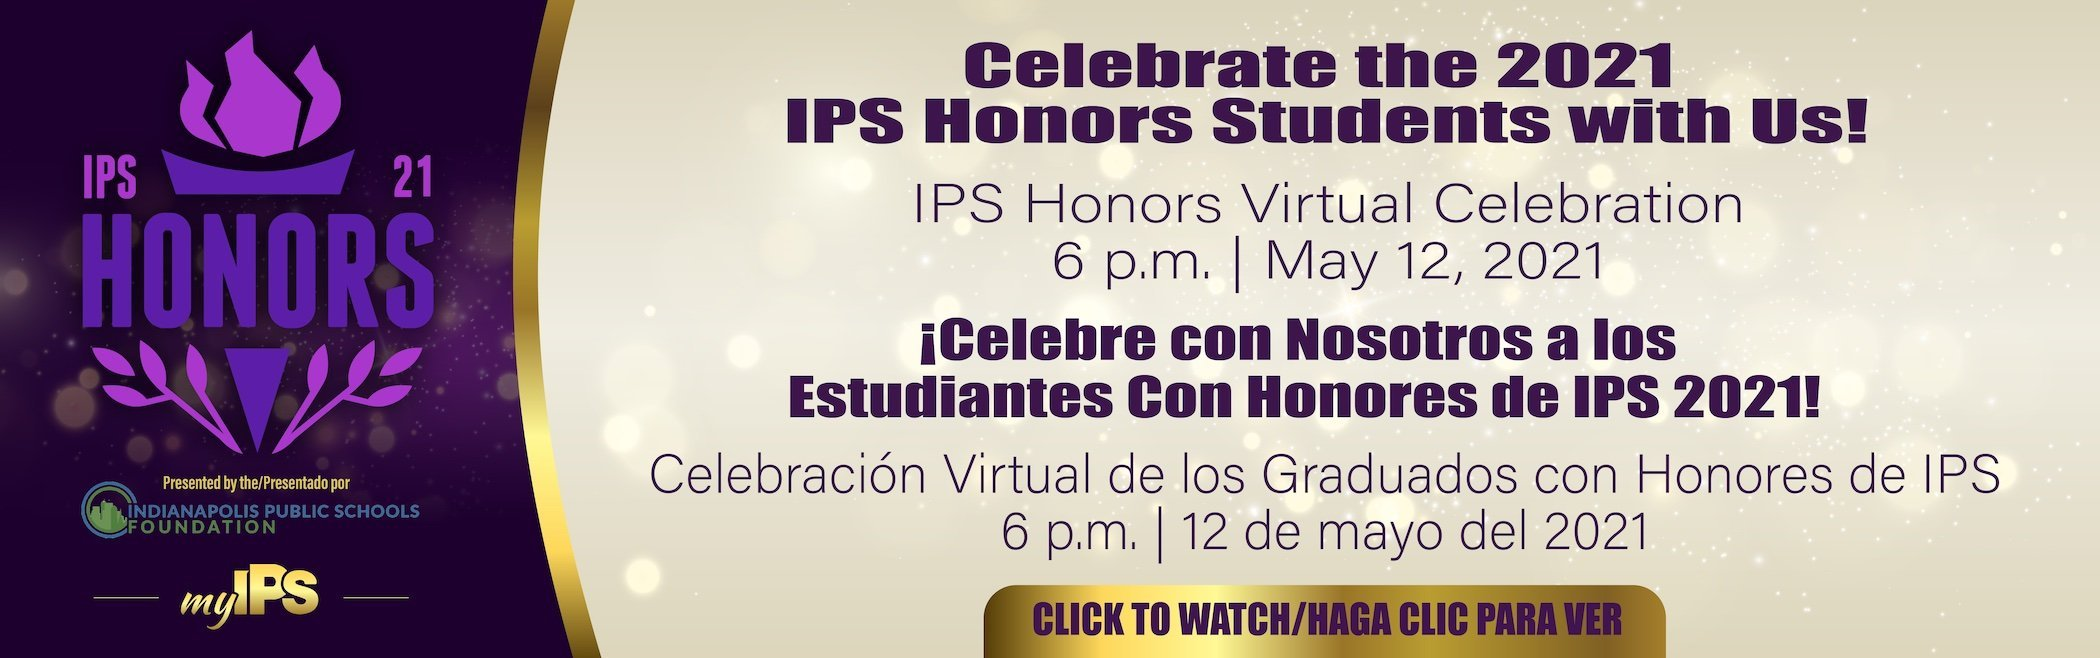 IPS Honors